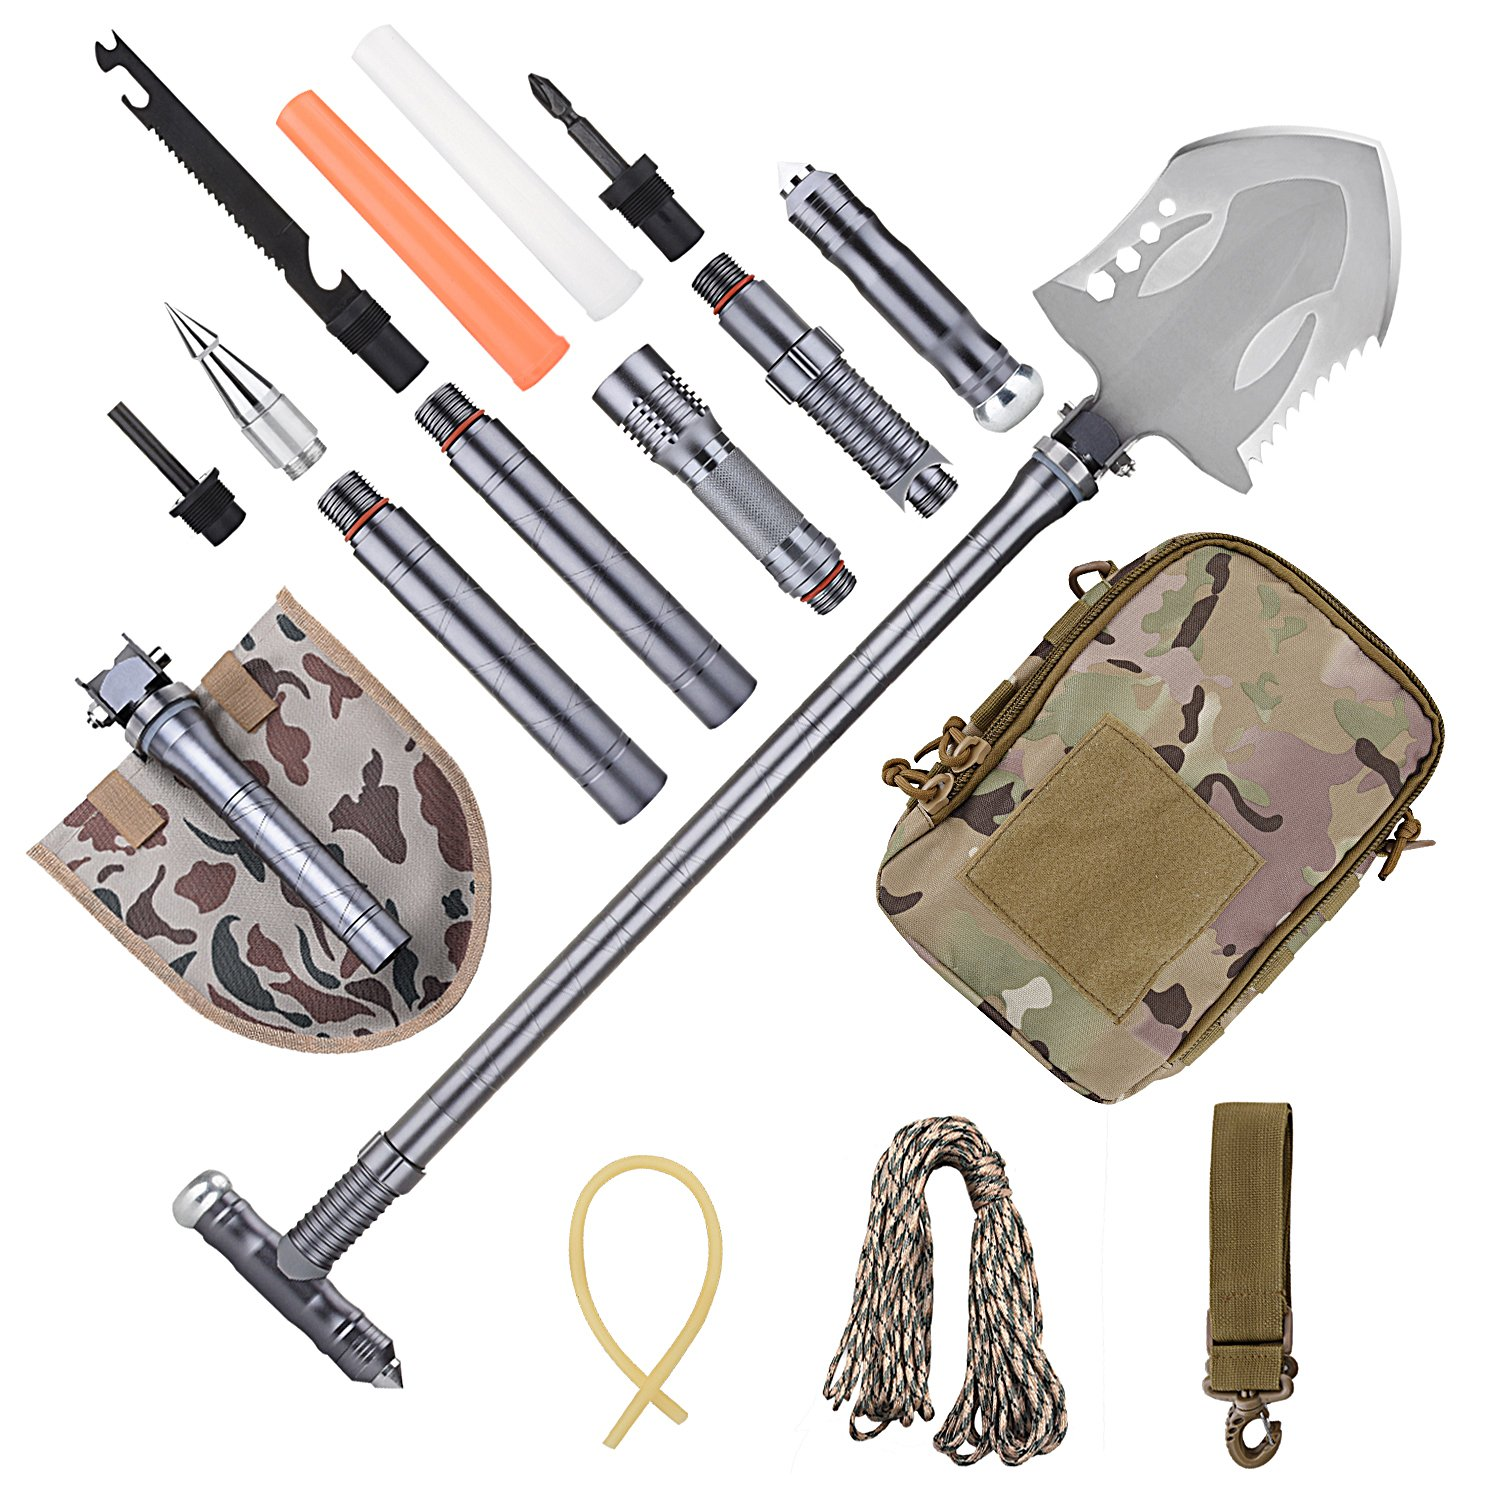 ANZESER New Outdoor Military Survival Folding Shovel with Flashlight - Multifunctional Portable Military Kit for Camping Hiking Outdoor Advent, Compact Emergency Kit,Heavy Duty Survival Gear